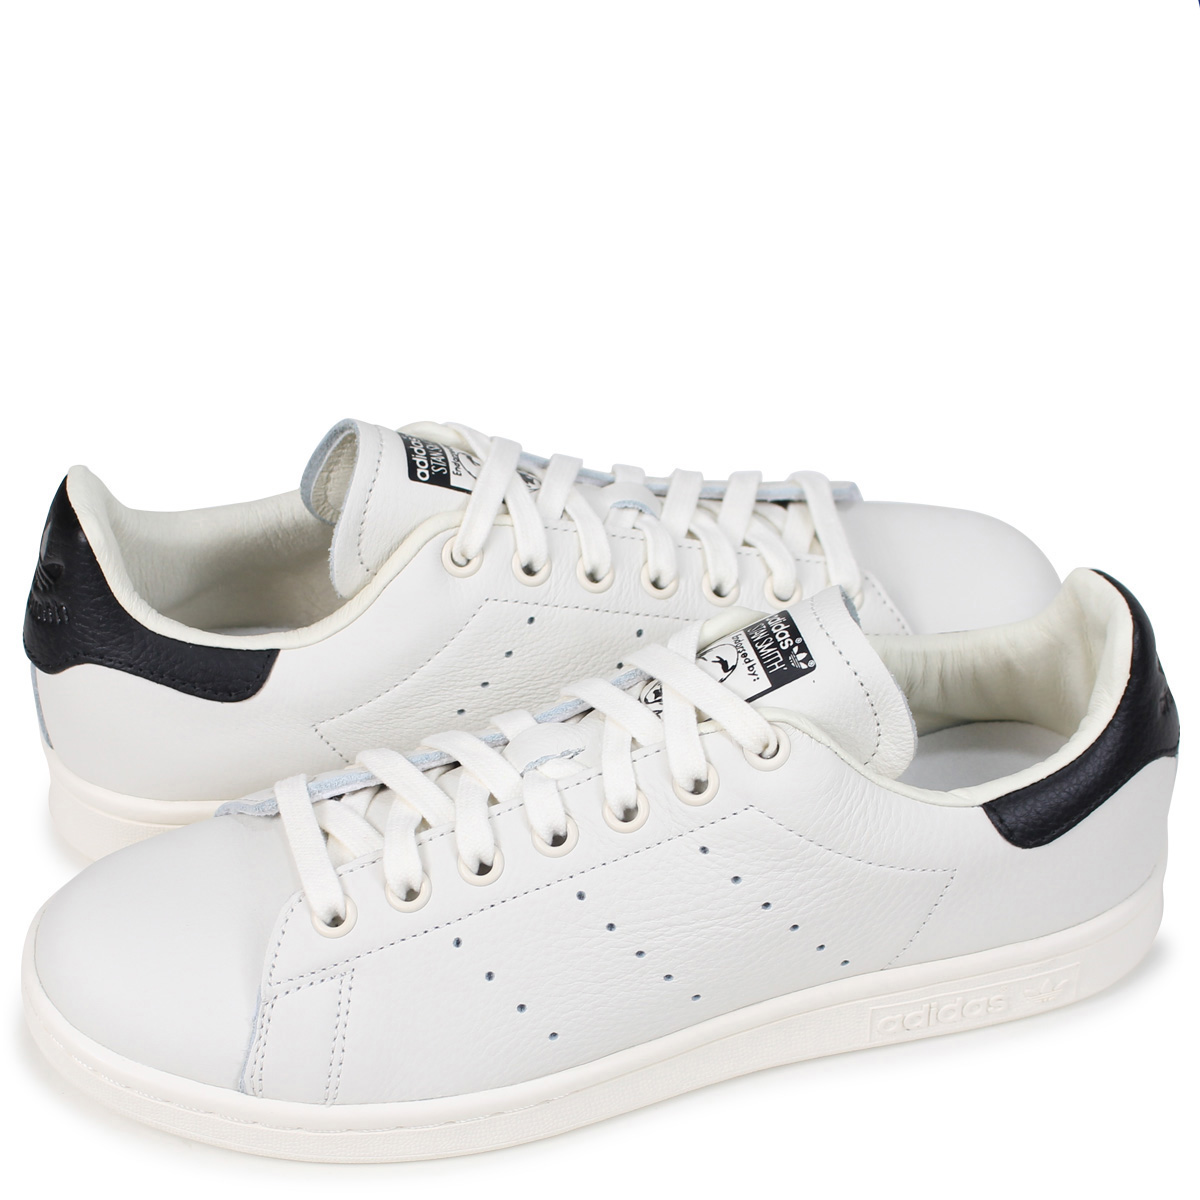 cheap for discount 65b68 a0bb6 adidas Originals STAN SMITH Adidas originals Stan Smith sneakers men gap  Dis B37897 white  load planned Shinnyu load in reservation product 6 20  containing  ...